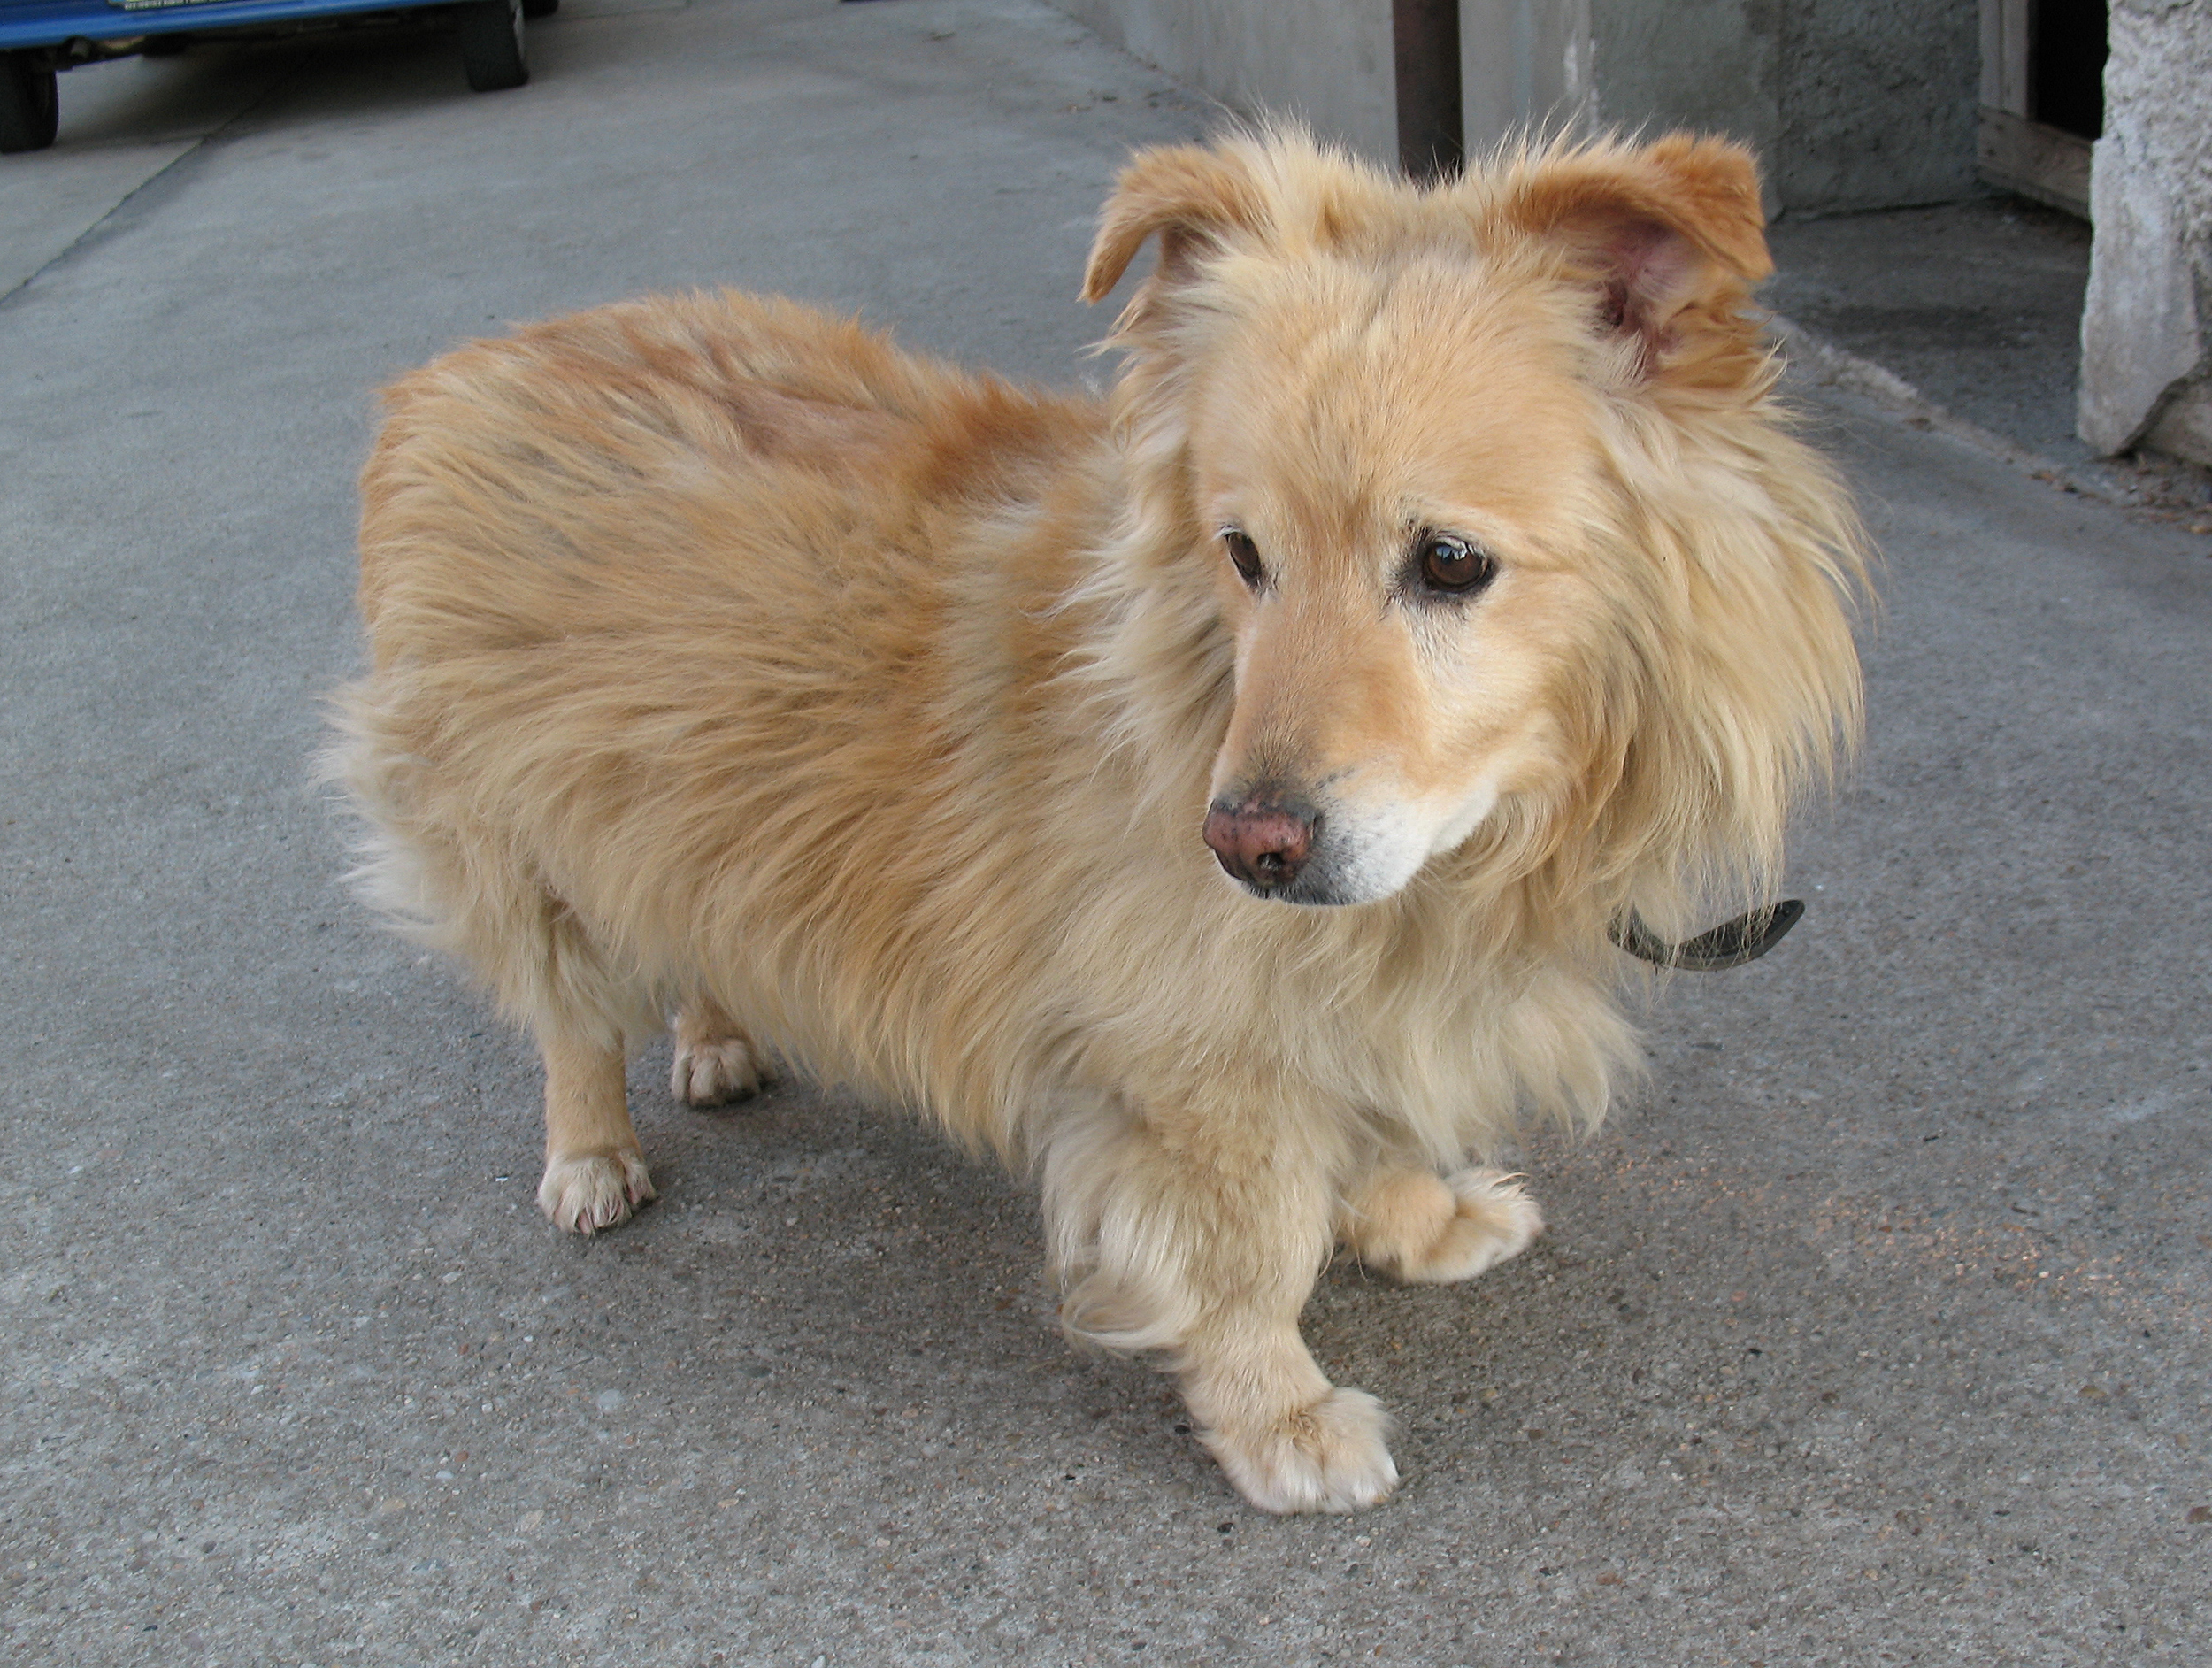 File:01-Kundel mixed breed dog.jpg - Wikimedia Commons